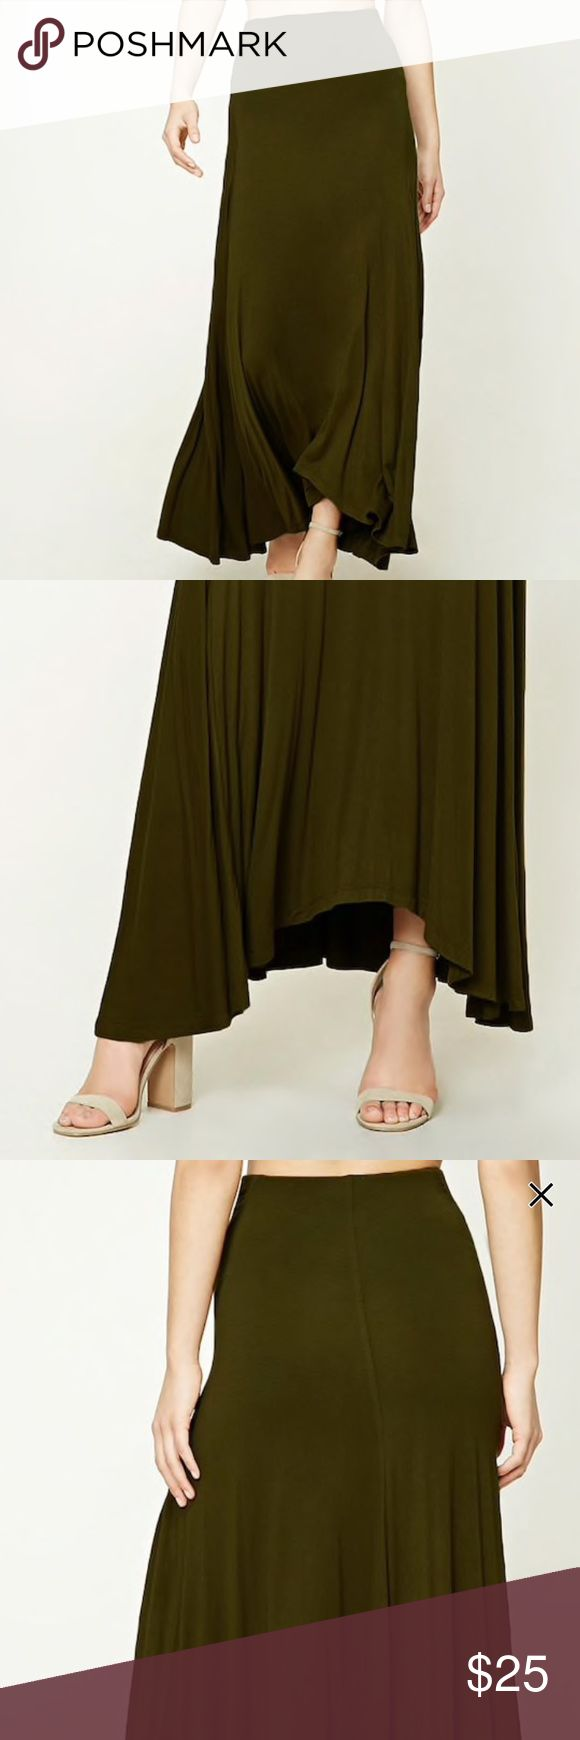 Olive green maxi skirt Olive green maxi skirt, size small, NWOT, worn one time. Has a high low hem, and is so flattering. This skirt is so comfy, you can literally where it anywhere(it can be dressed up or down!) SAY WHAAAT?!?🌿🌵 { BRAND IS FOR EXPOSURE, THIS IS NOT A FREE PEOPLE PIECE BUT IS OF ••EXCELLENT QUALITY•• } Skirts Maxi